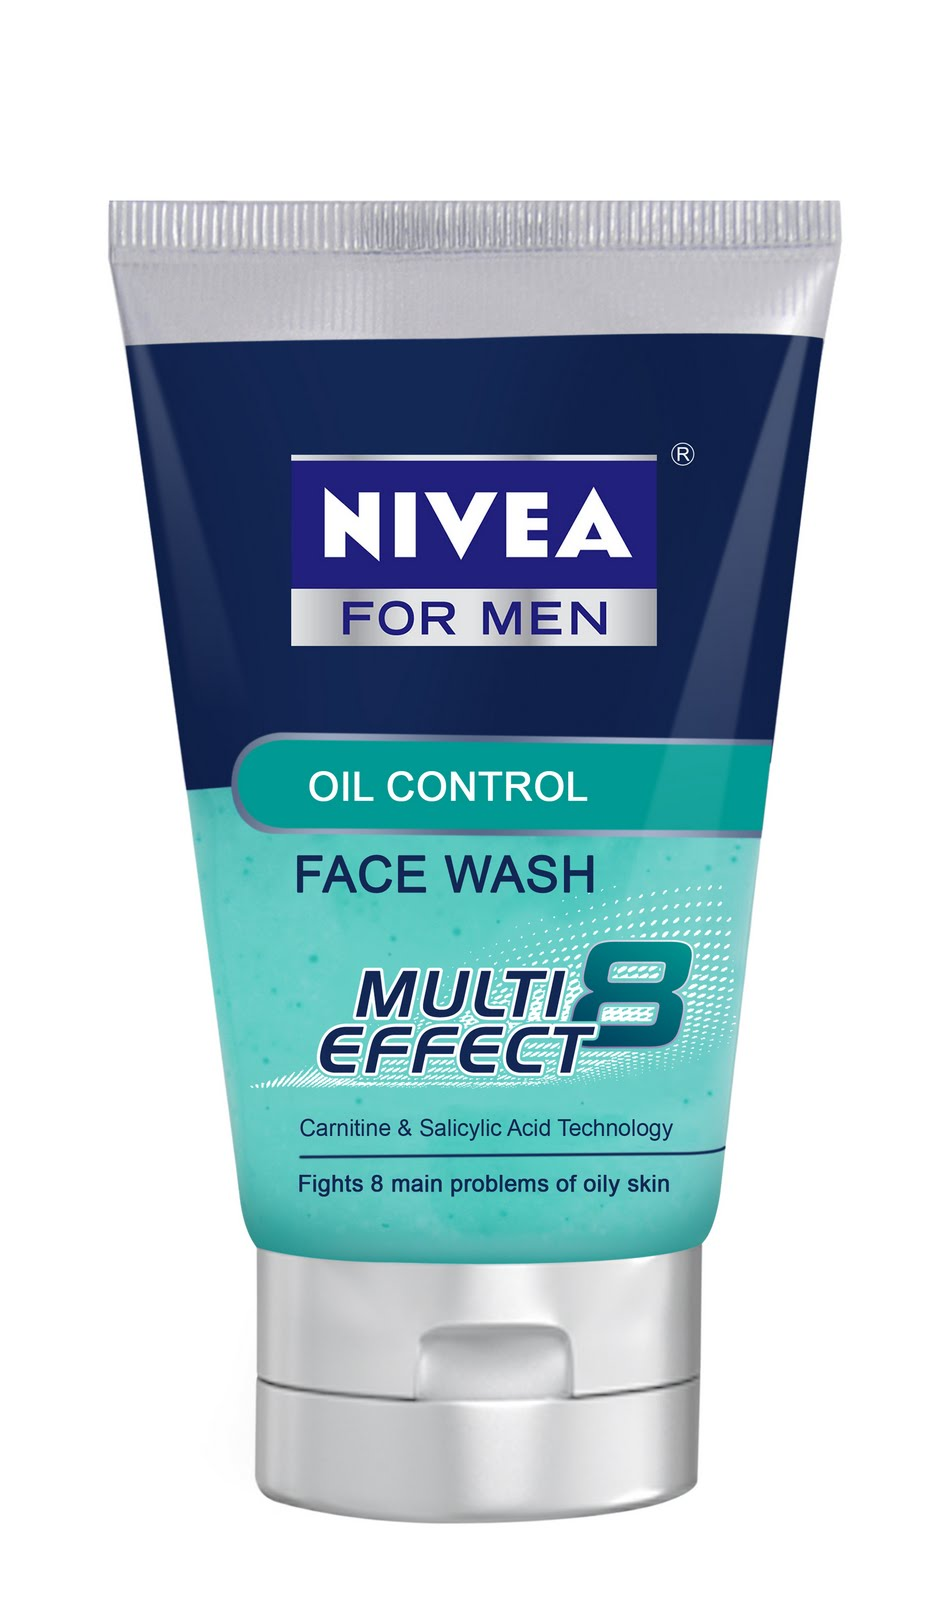 Nivea Men Multi-Effect 8 Oil control Face Wash | erViews ... Nivea Face Wash For Men Oil Control